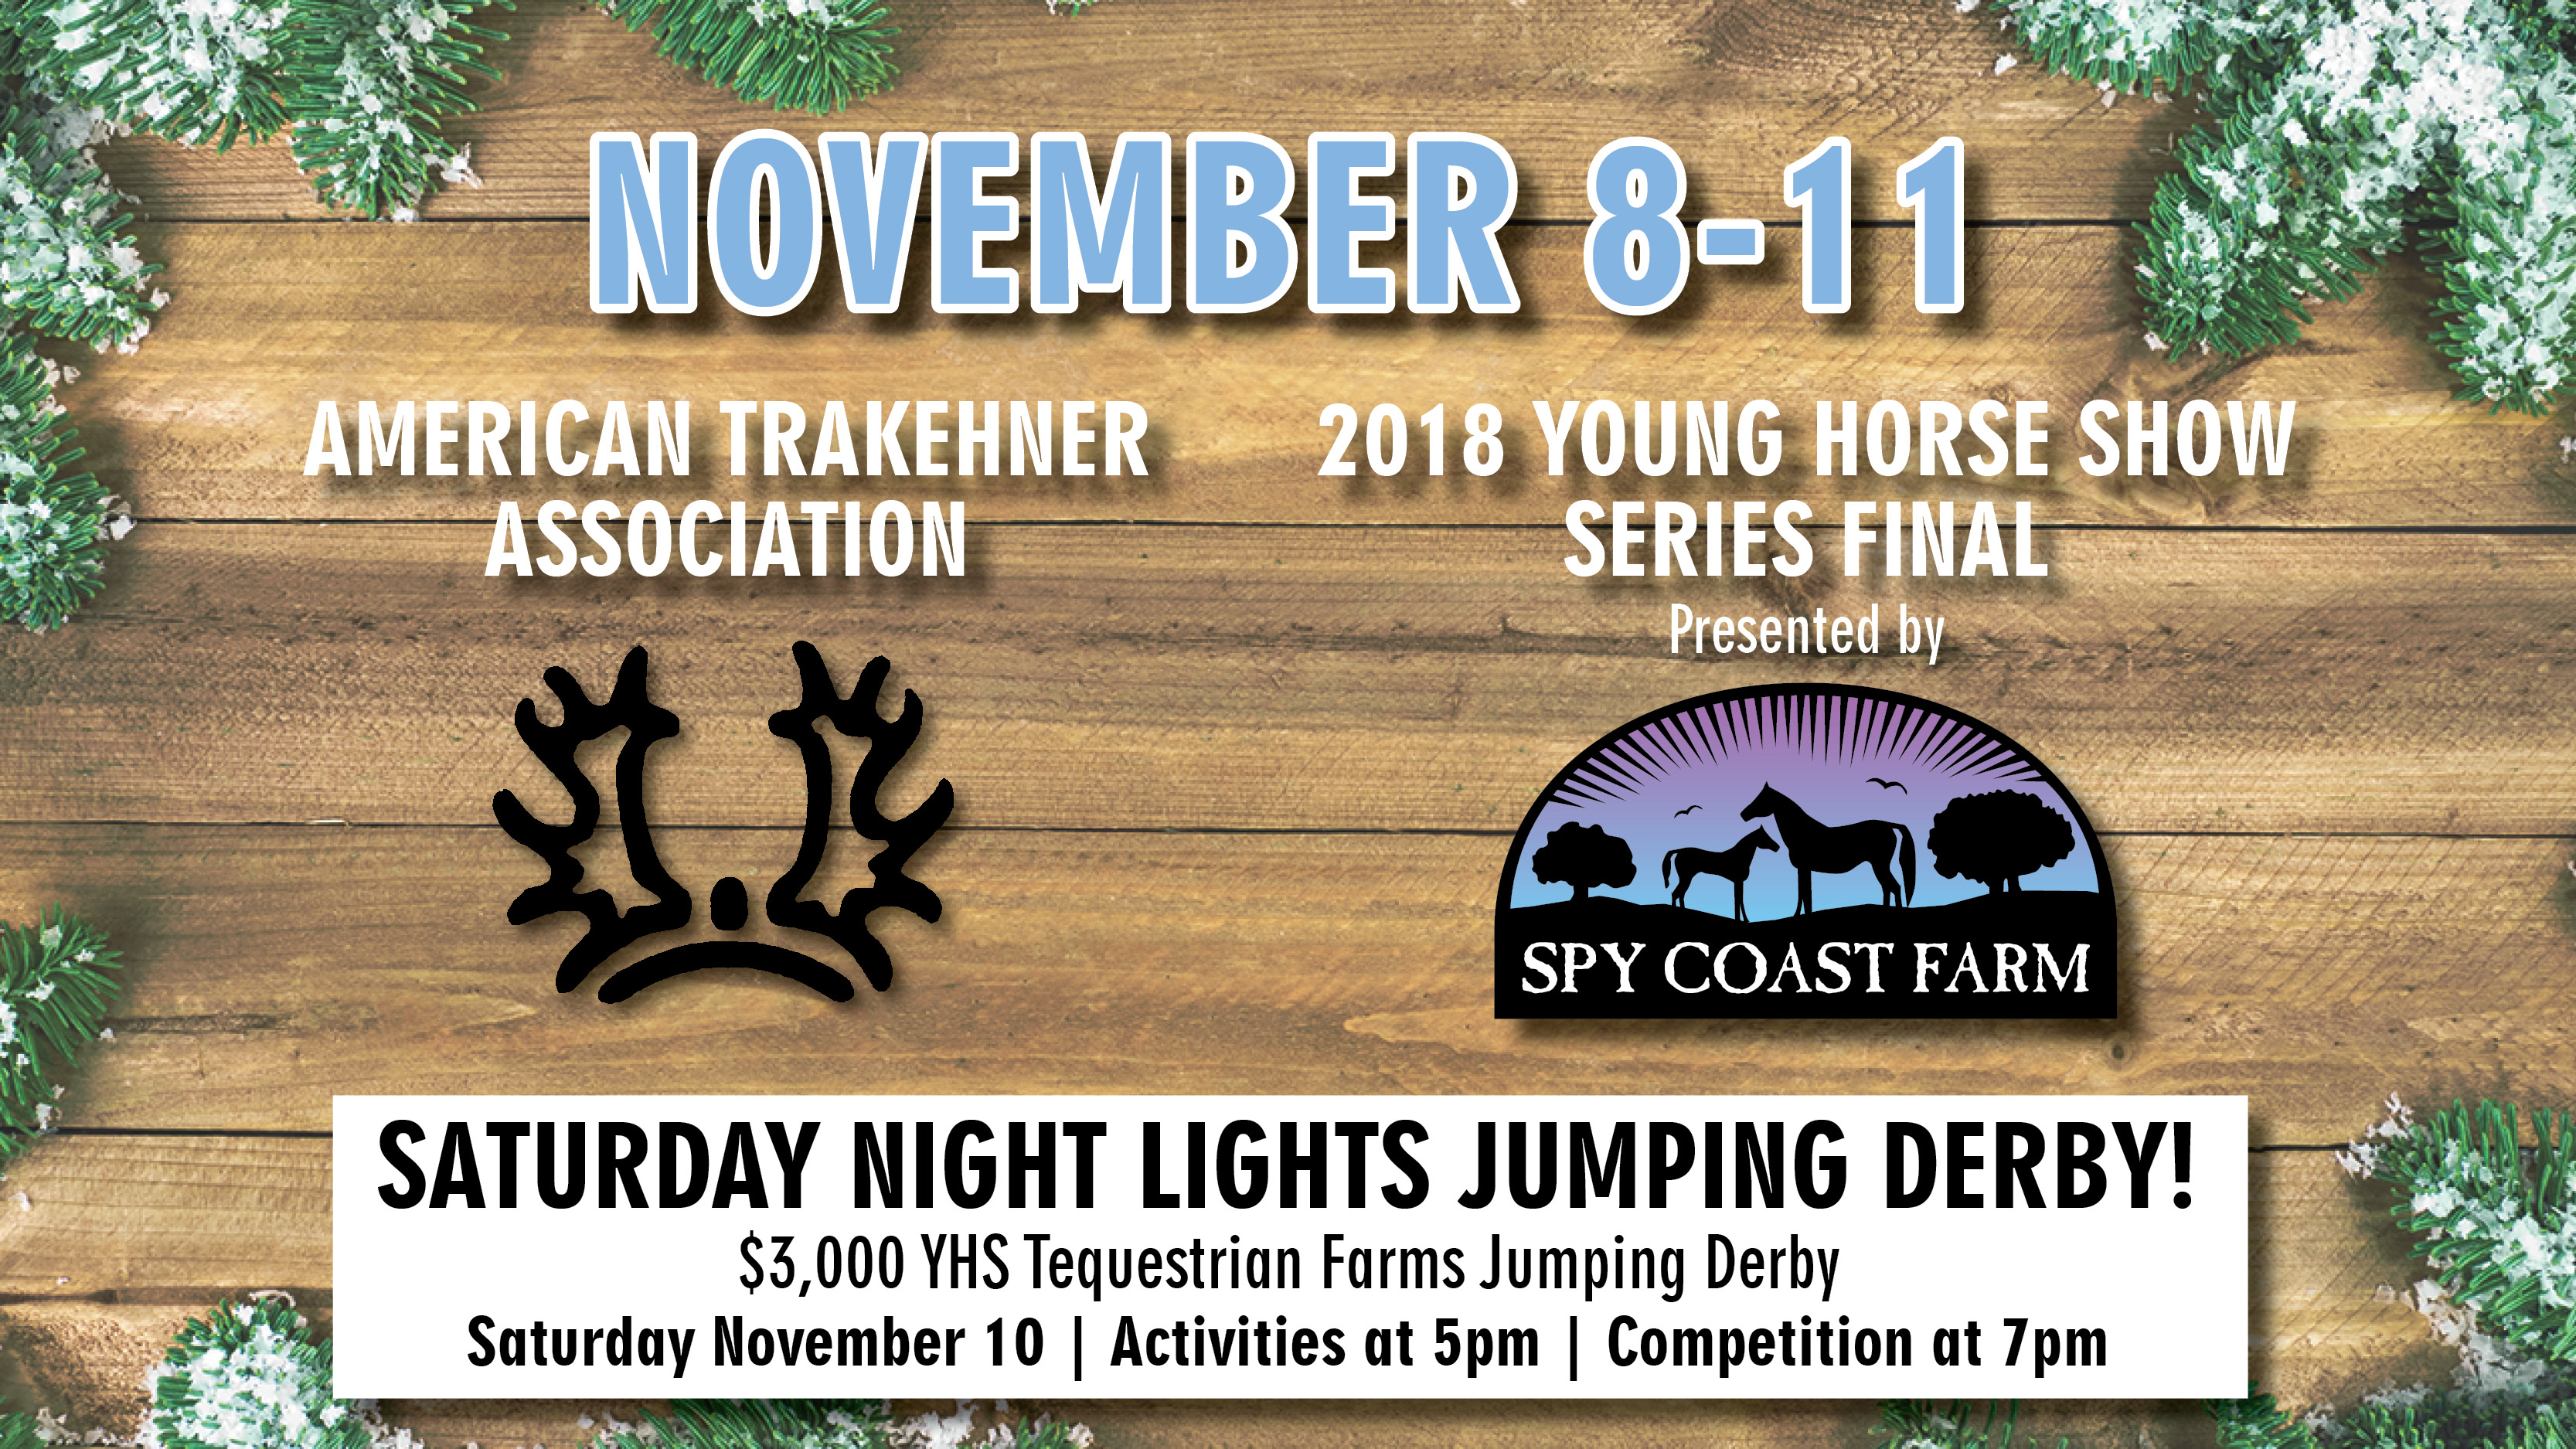 American Trakehner Association and 2018 Young Horse Show Series Final